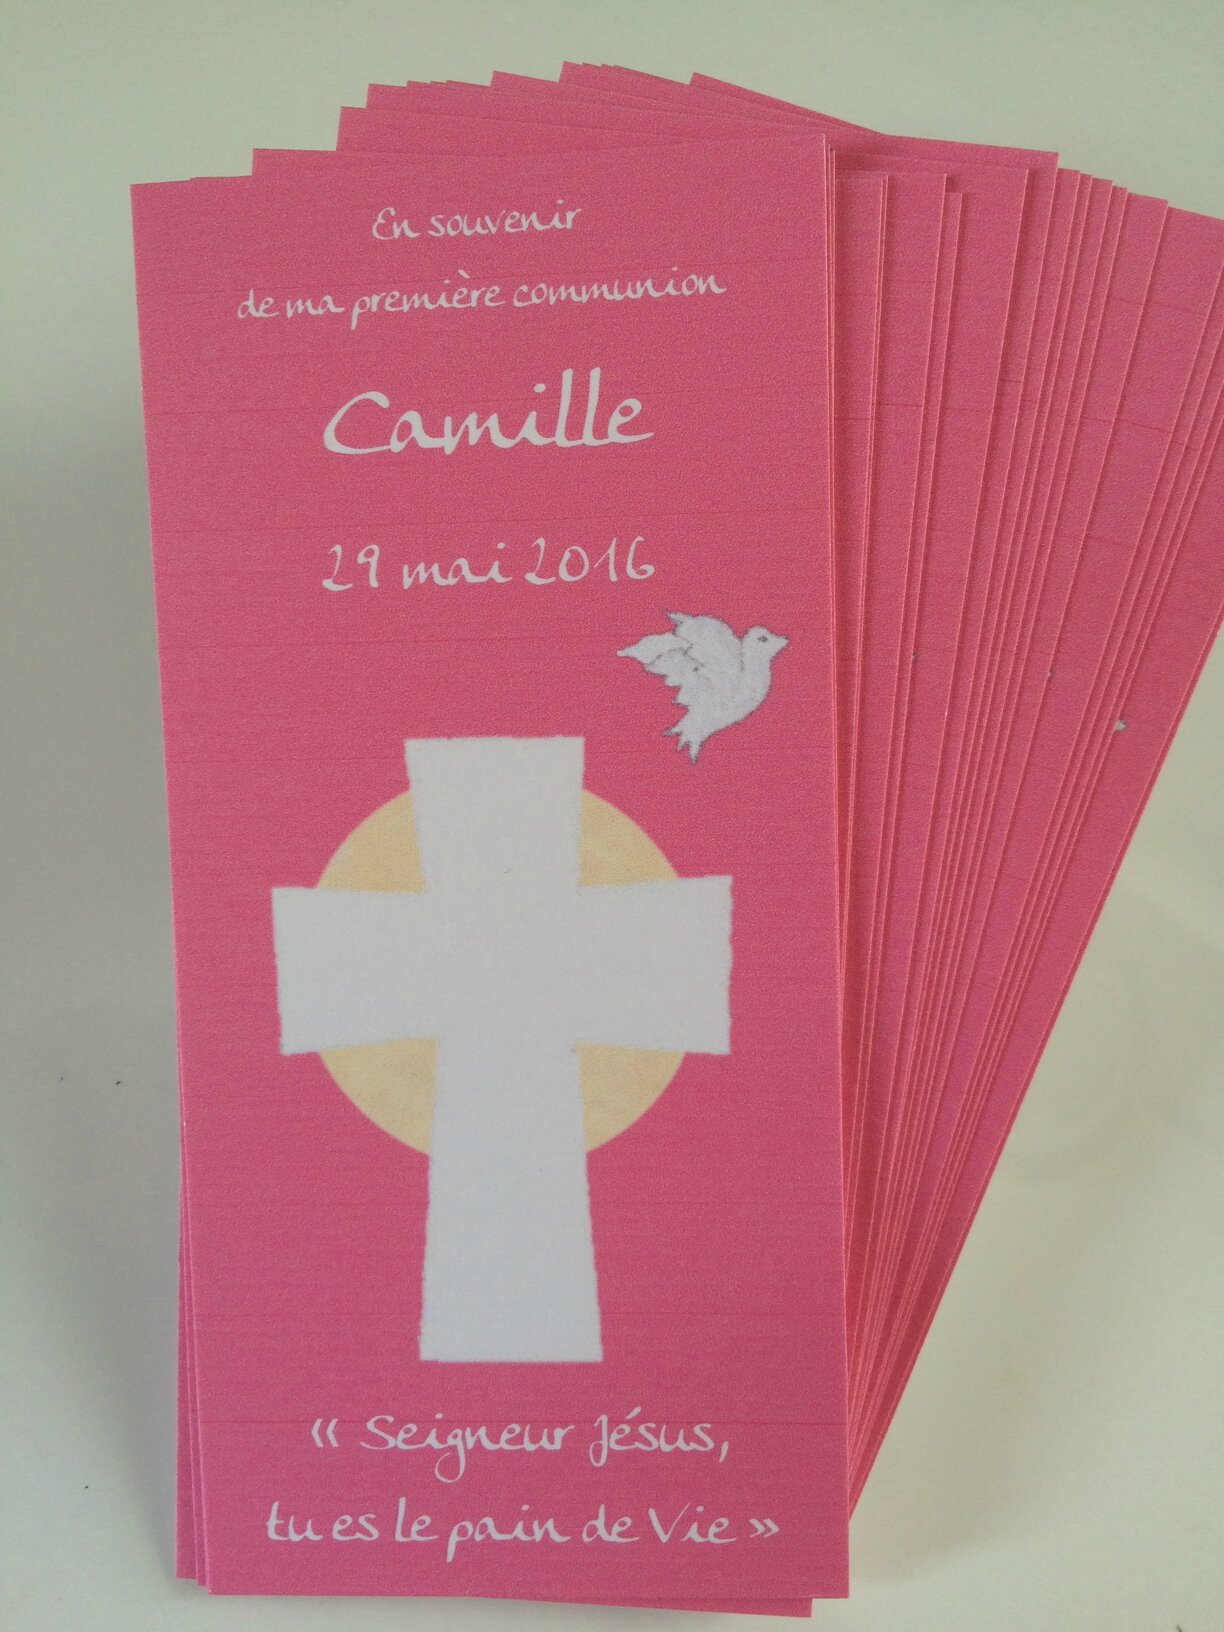 Signet de communion Camille 290516